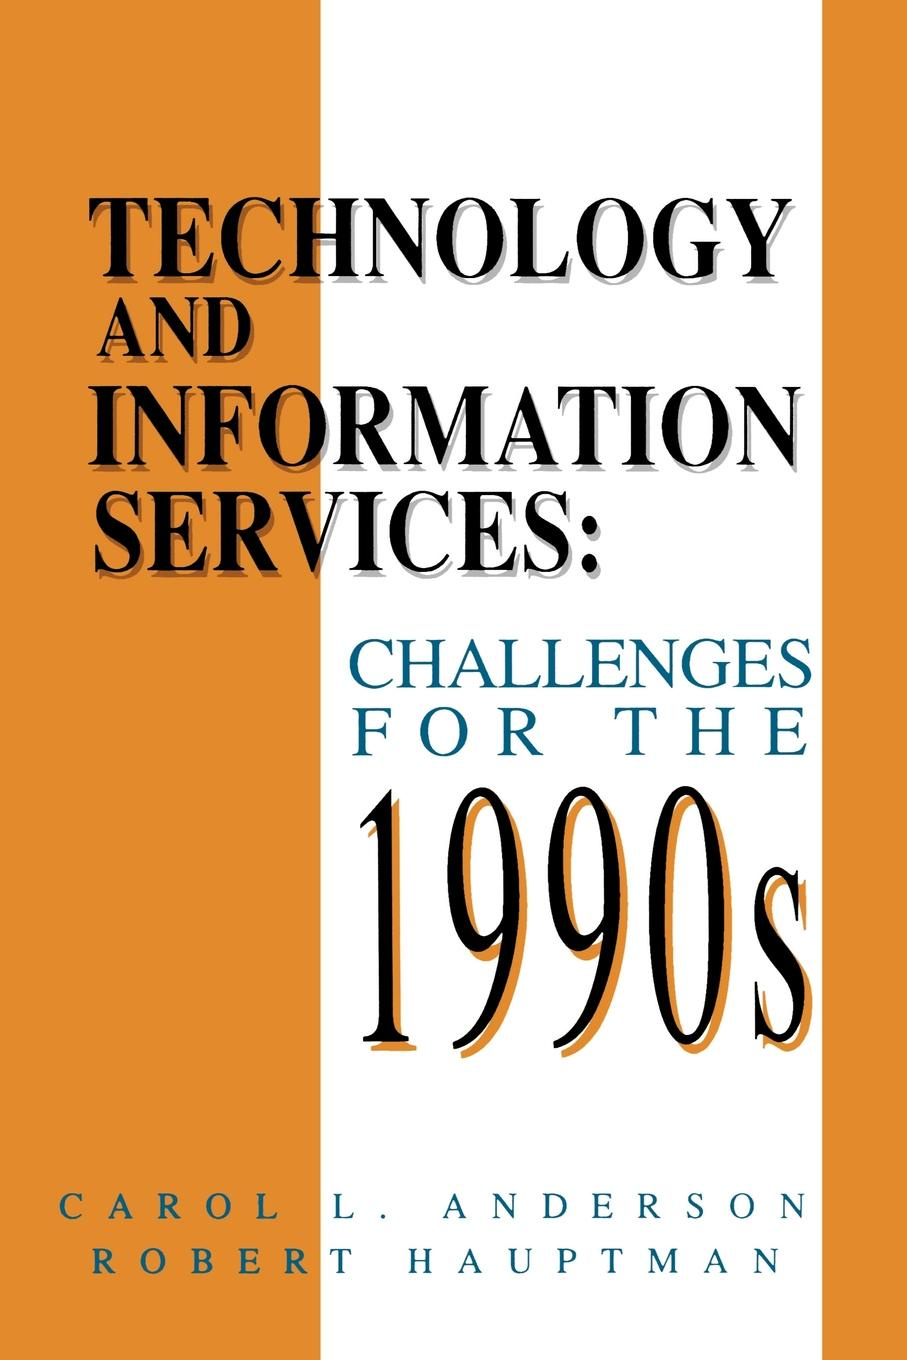 Carol L. Anderson, Robert Hauptman Technology and Information Services. Challenges for the 1990's dean lane the chief information officer s body of knowledge people process and technology